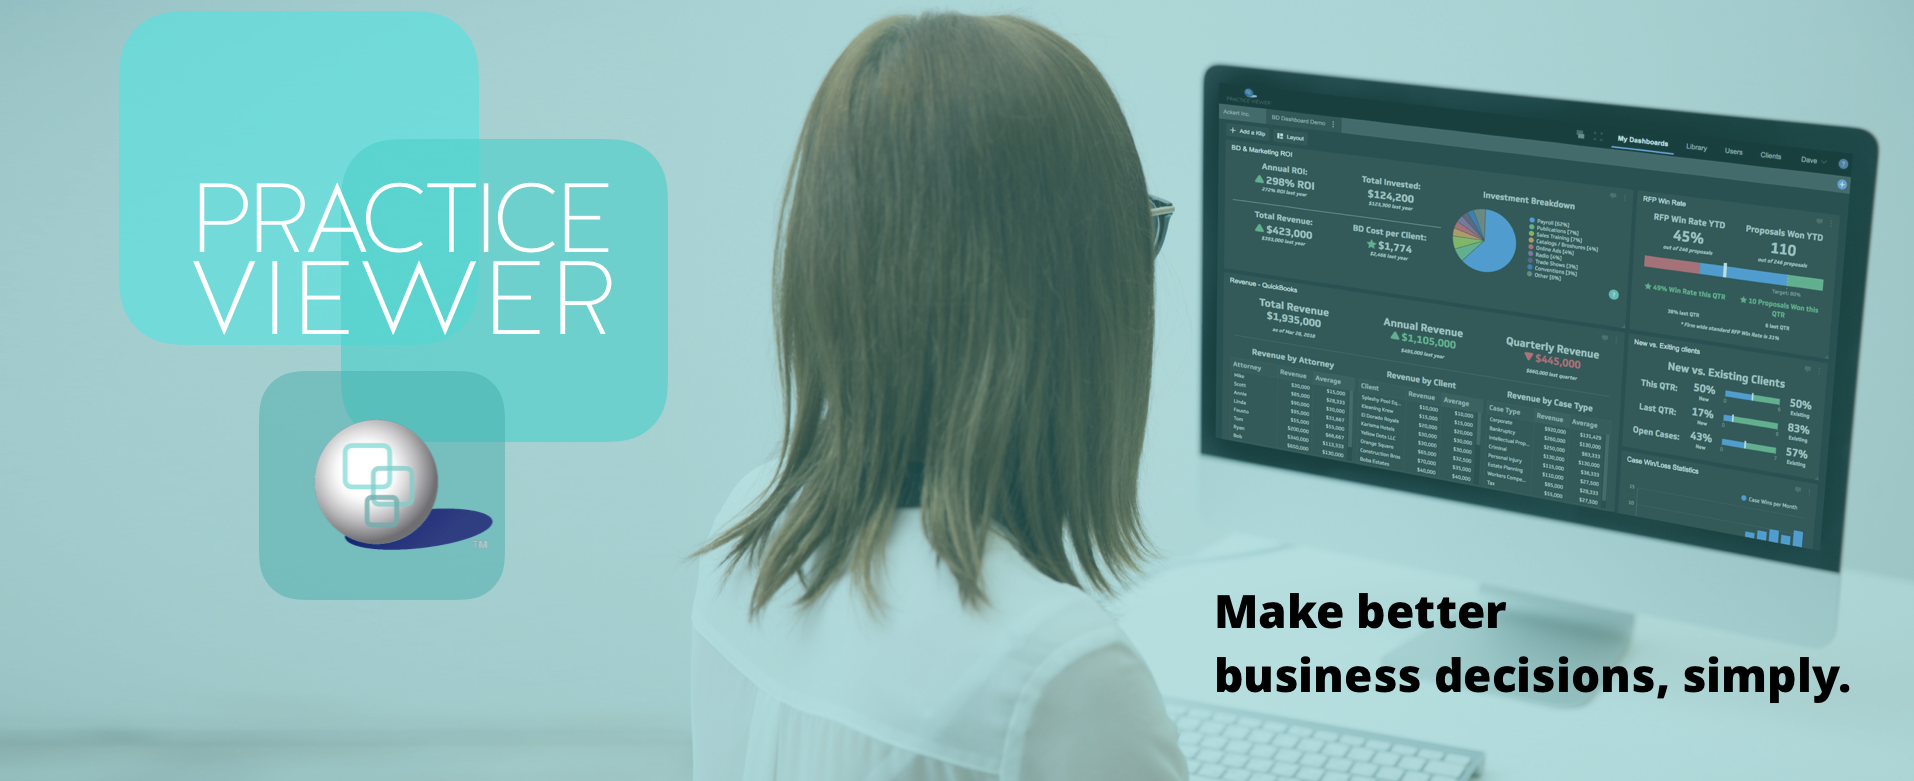 Practice Viewer: Make better business decisions, simply.